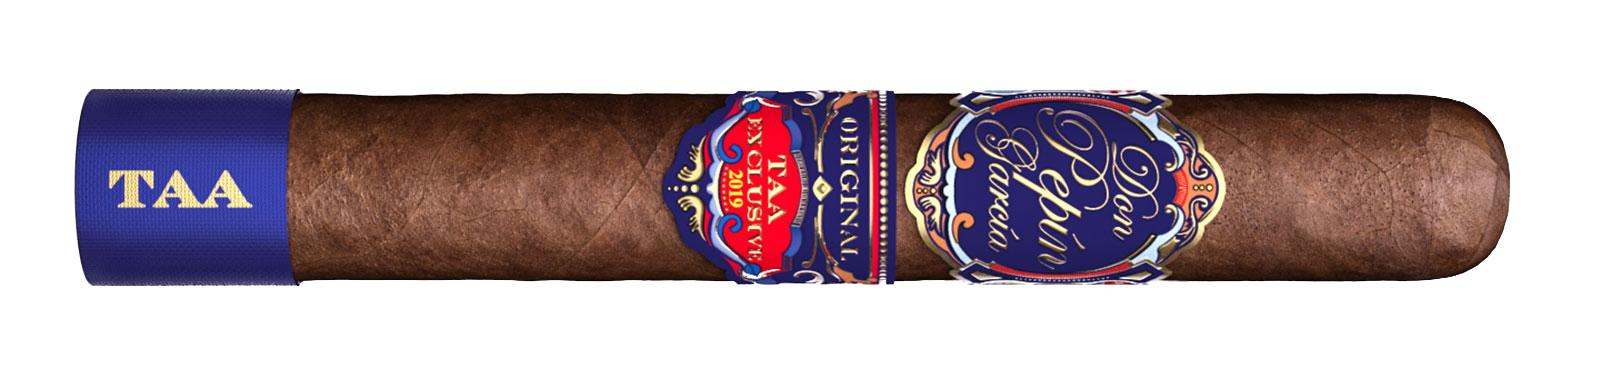 Don Pepin Garcia Original TAA Exclusive Limited Edition 2019